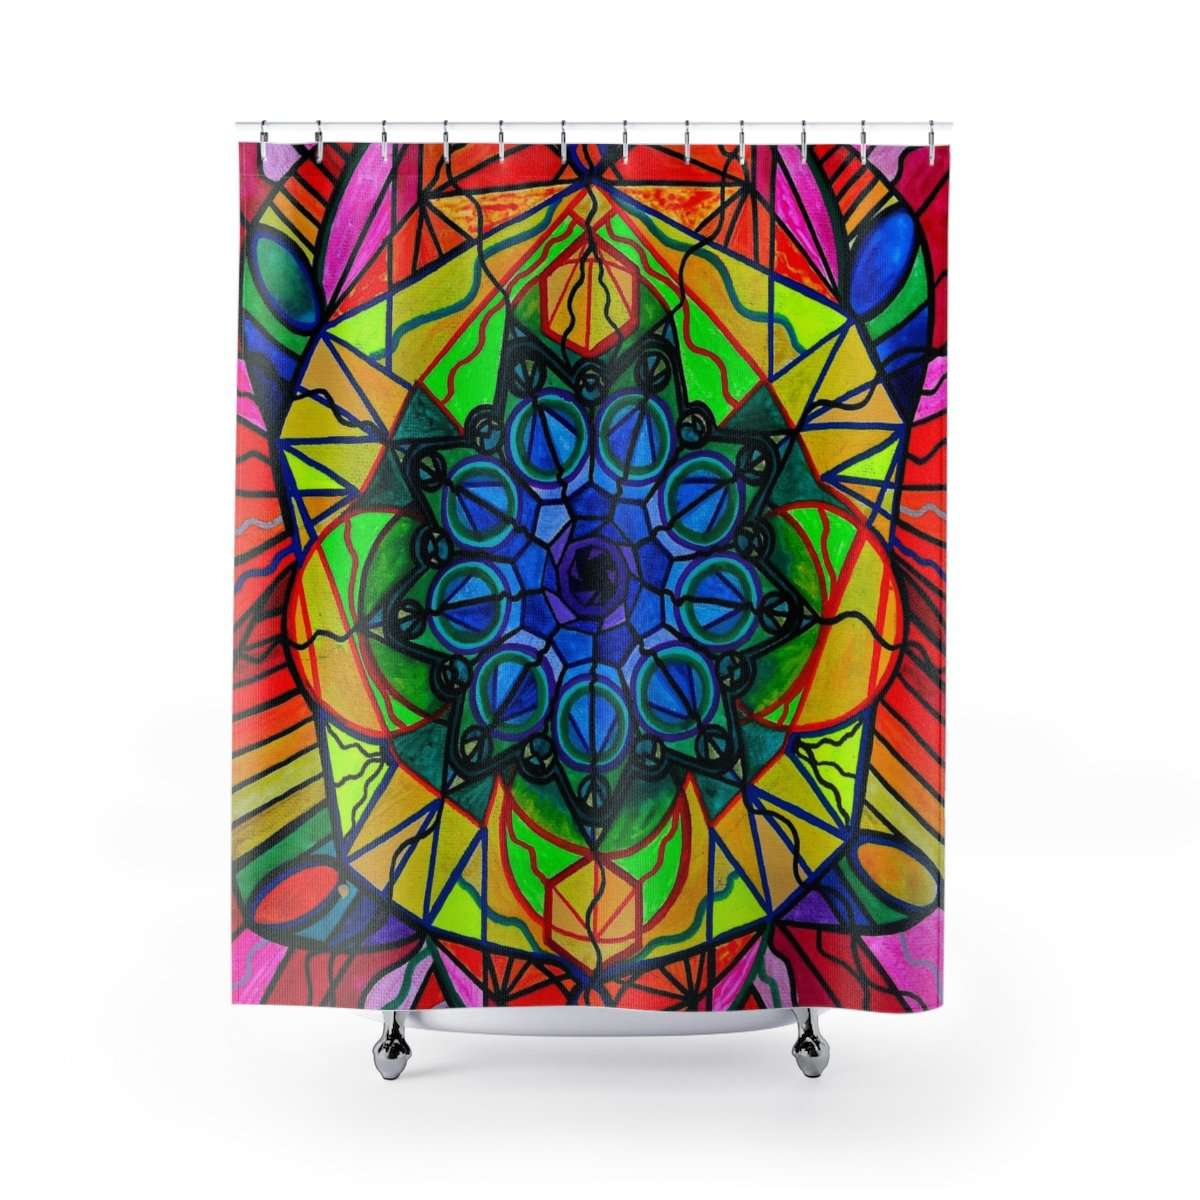 Creativity - Shower Curtains